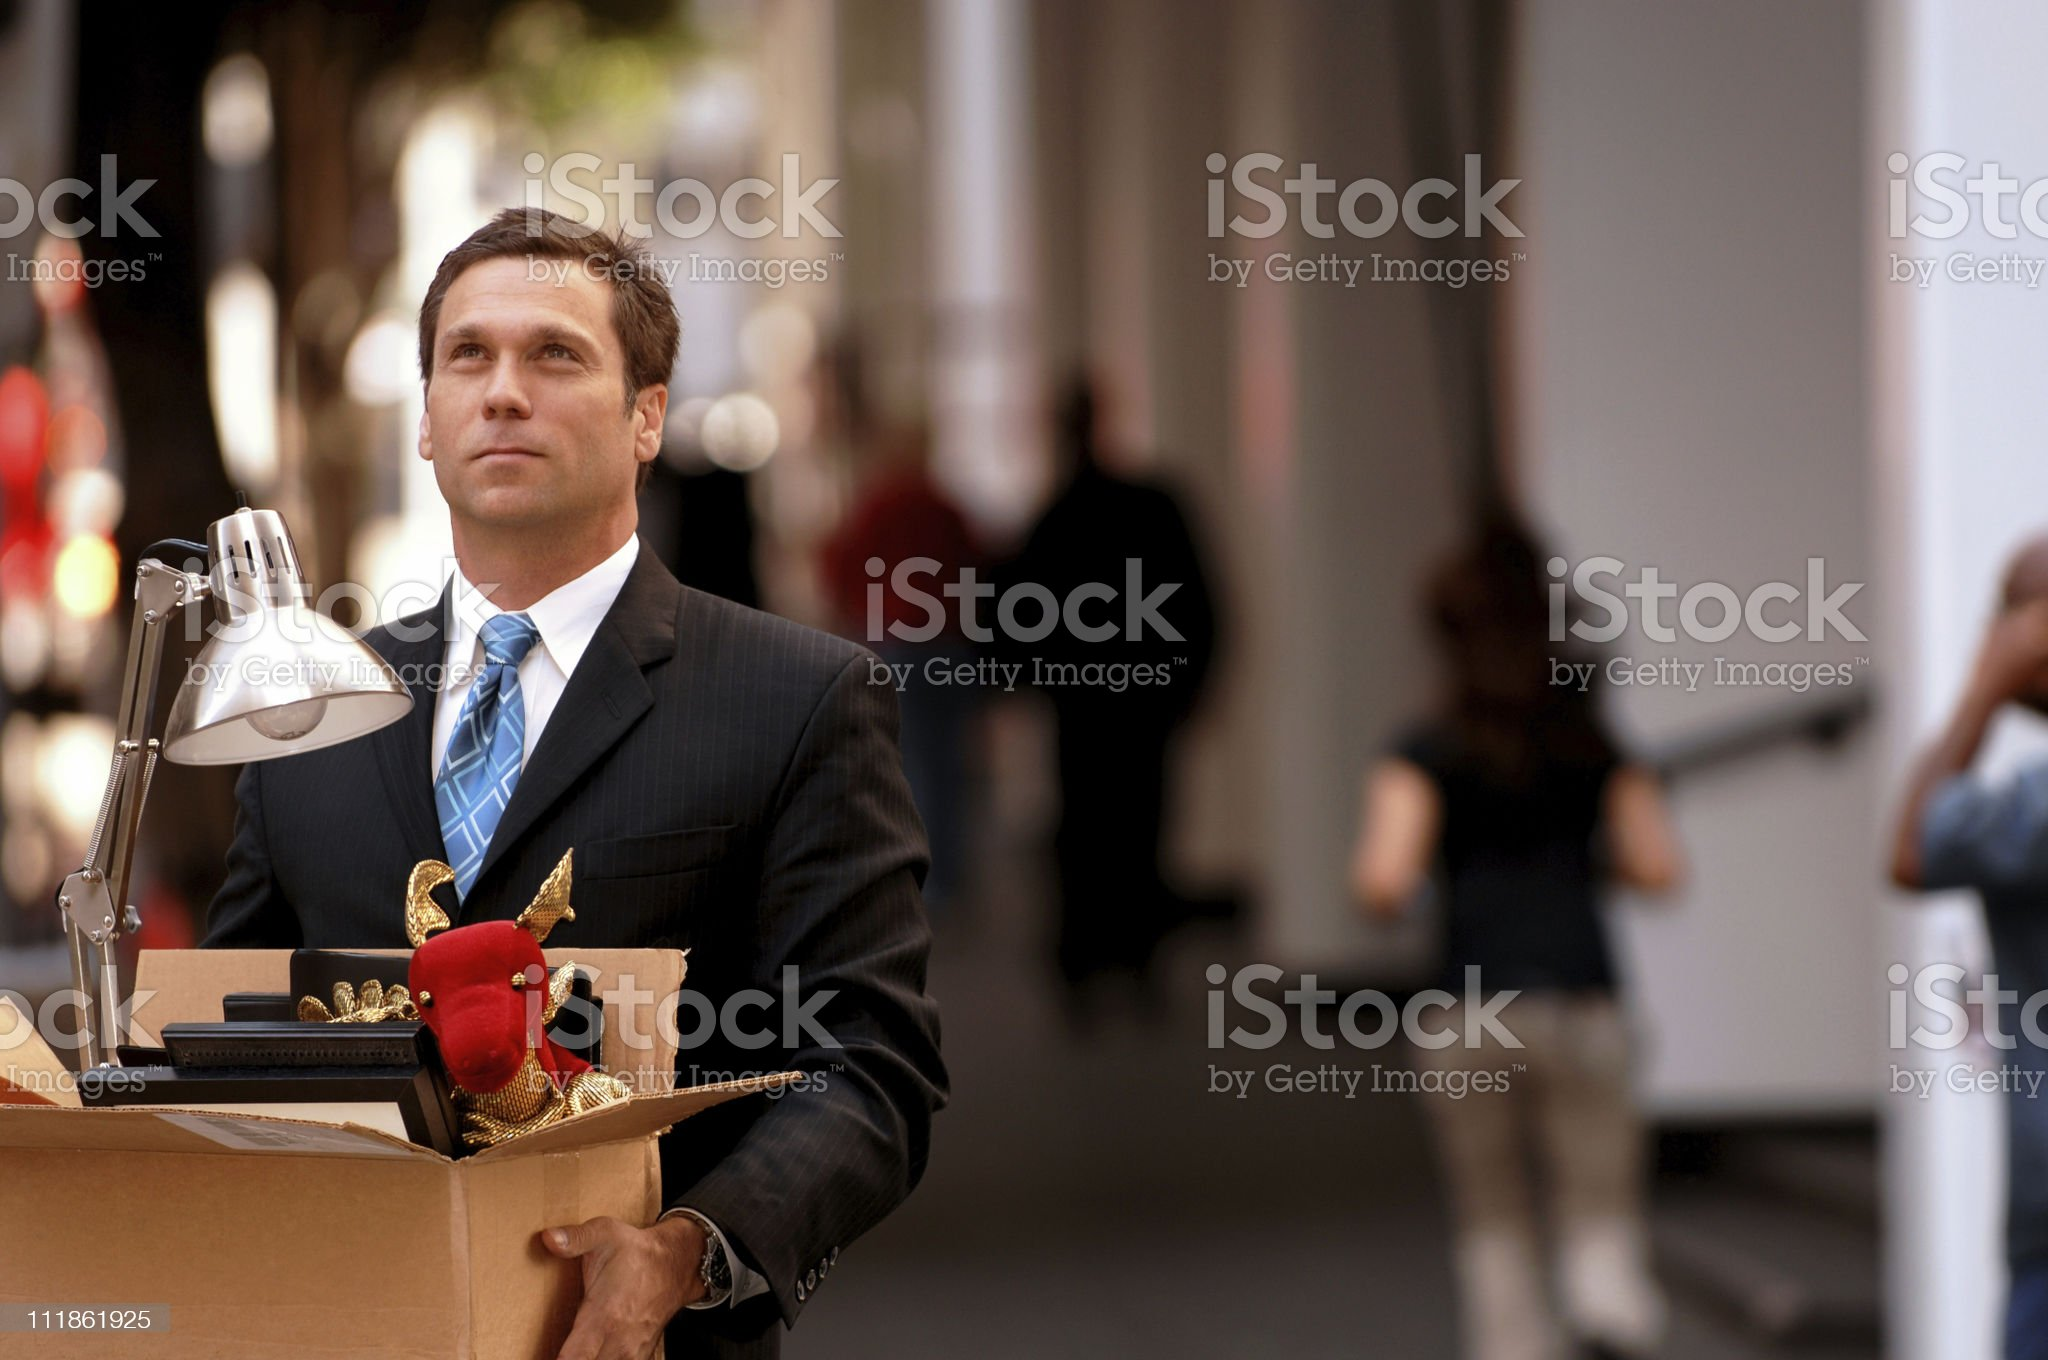 Fired Businessman with Cardboard Box of Belongings royalty-free stock photo